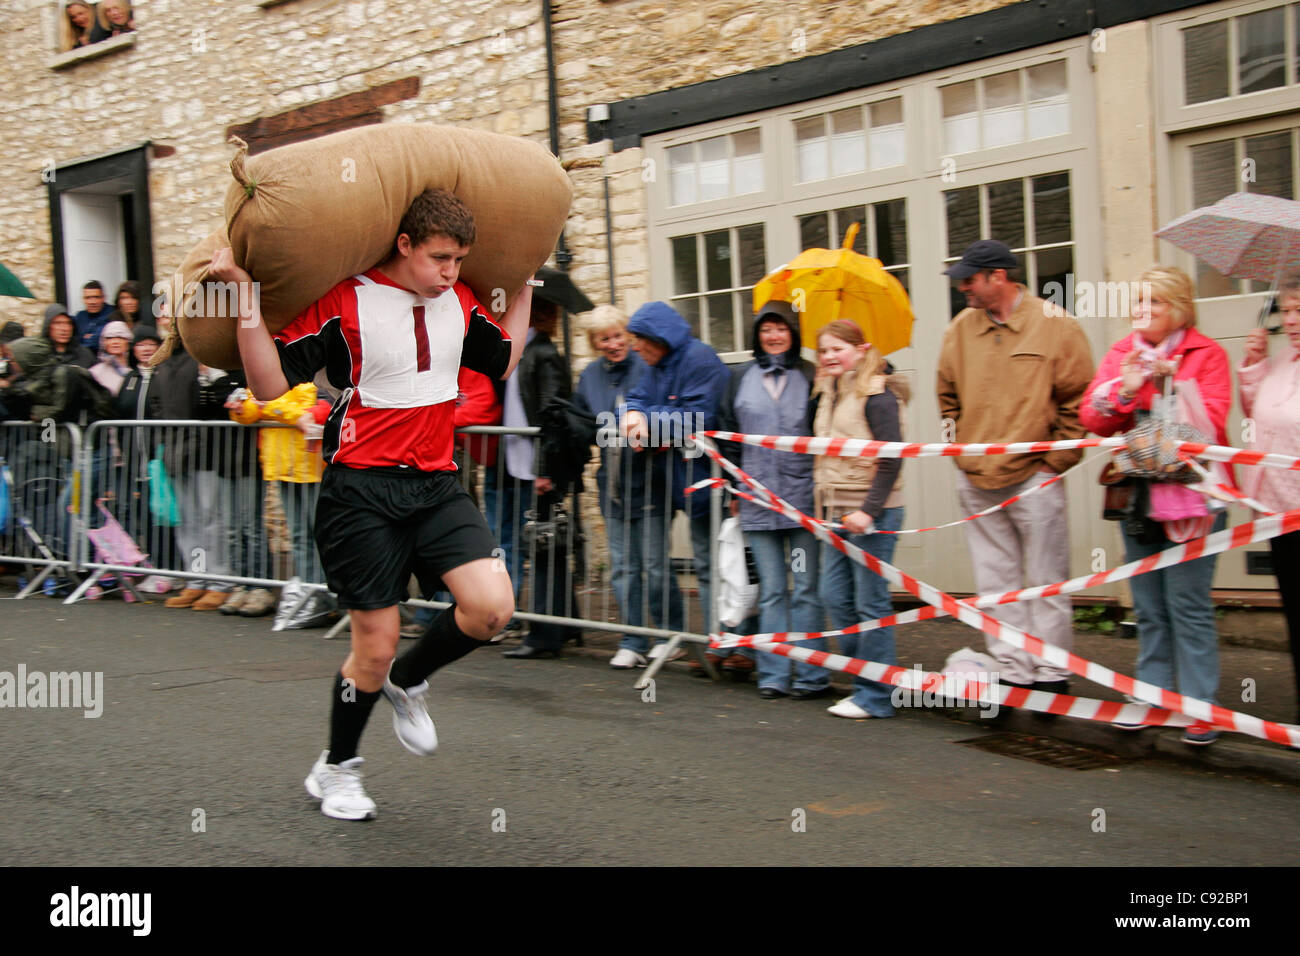 The quirky annual Tetbury Woolsack Races, held on Gumstool Hill in Tetbury in Gloucestershire, England - Stock Image